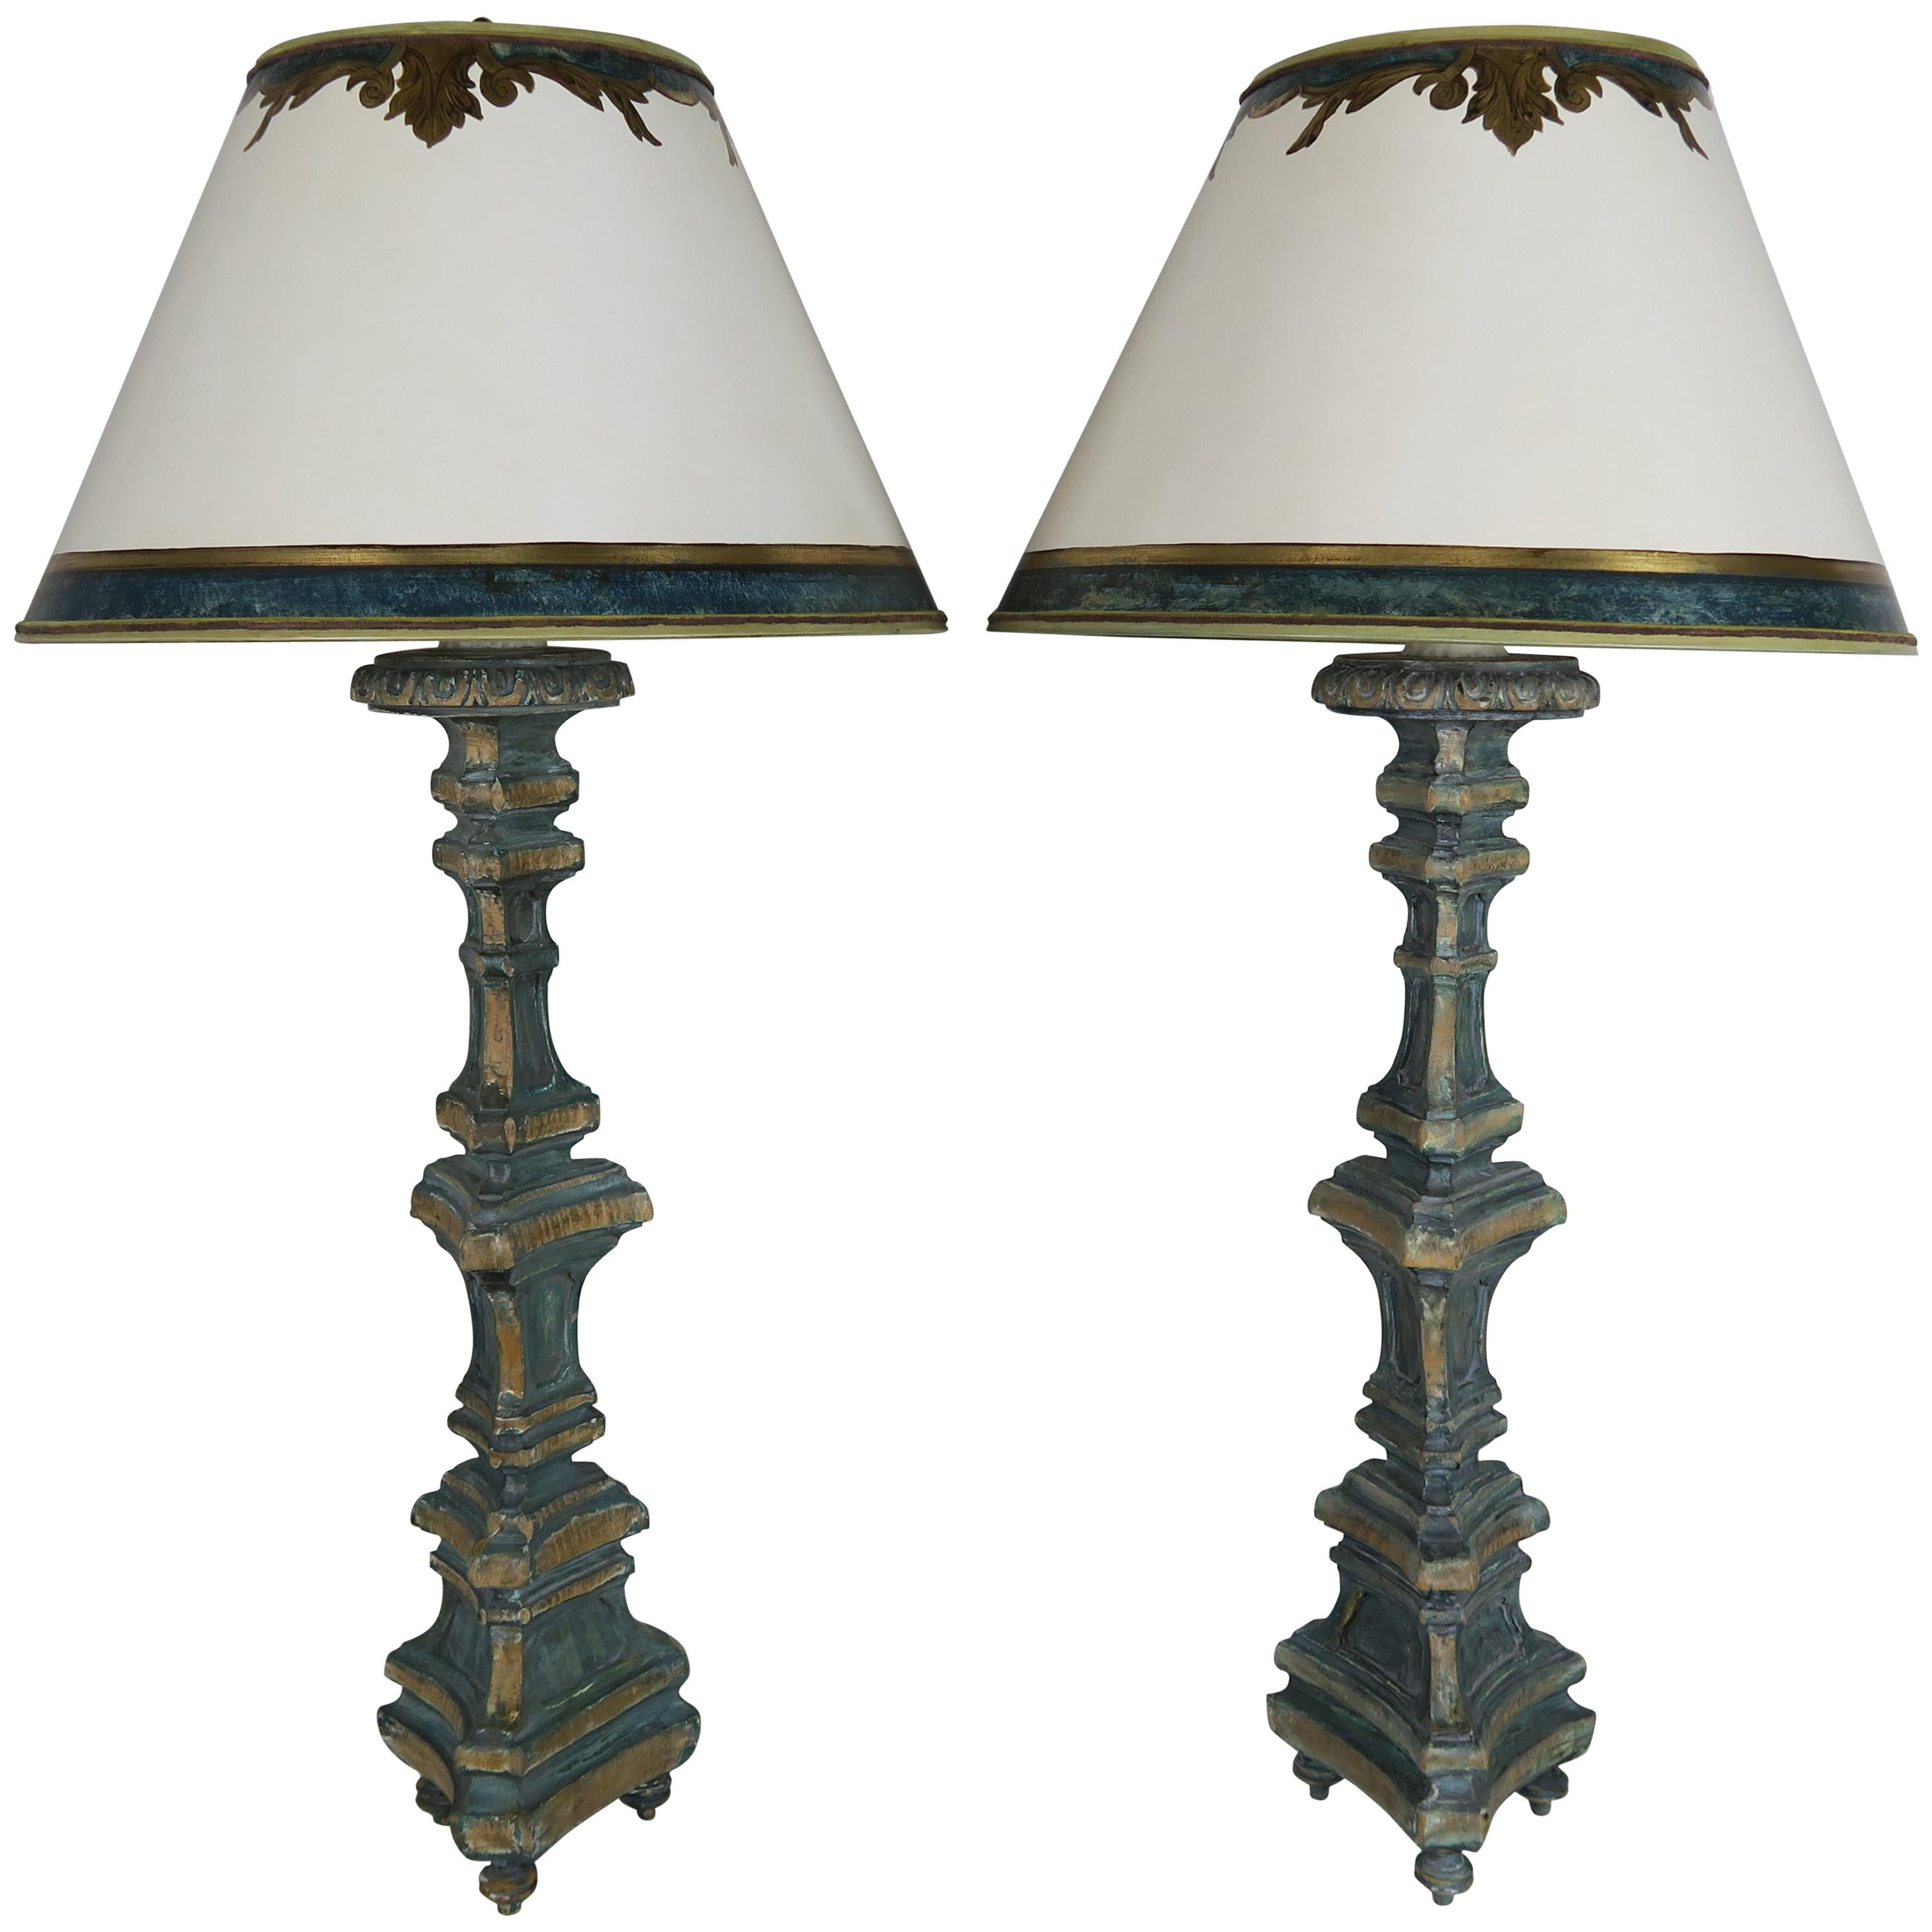 Pair of Italian Painted Candlestick Lamps with Parchment Shades